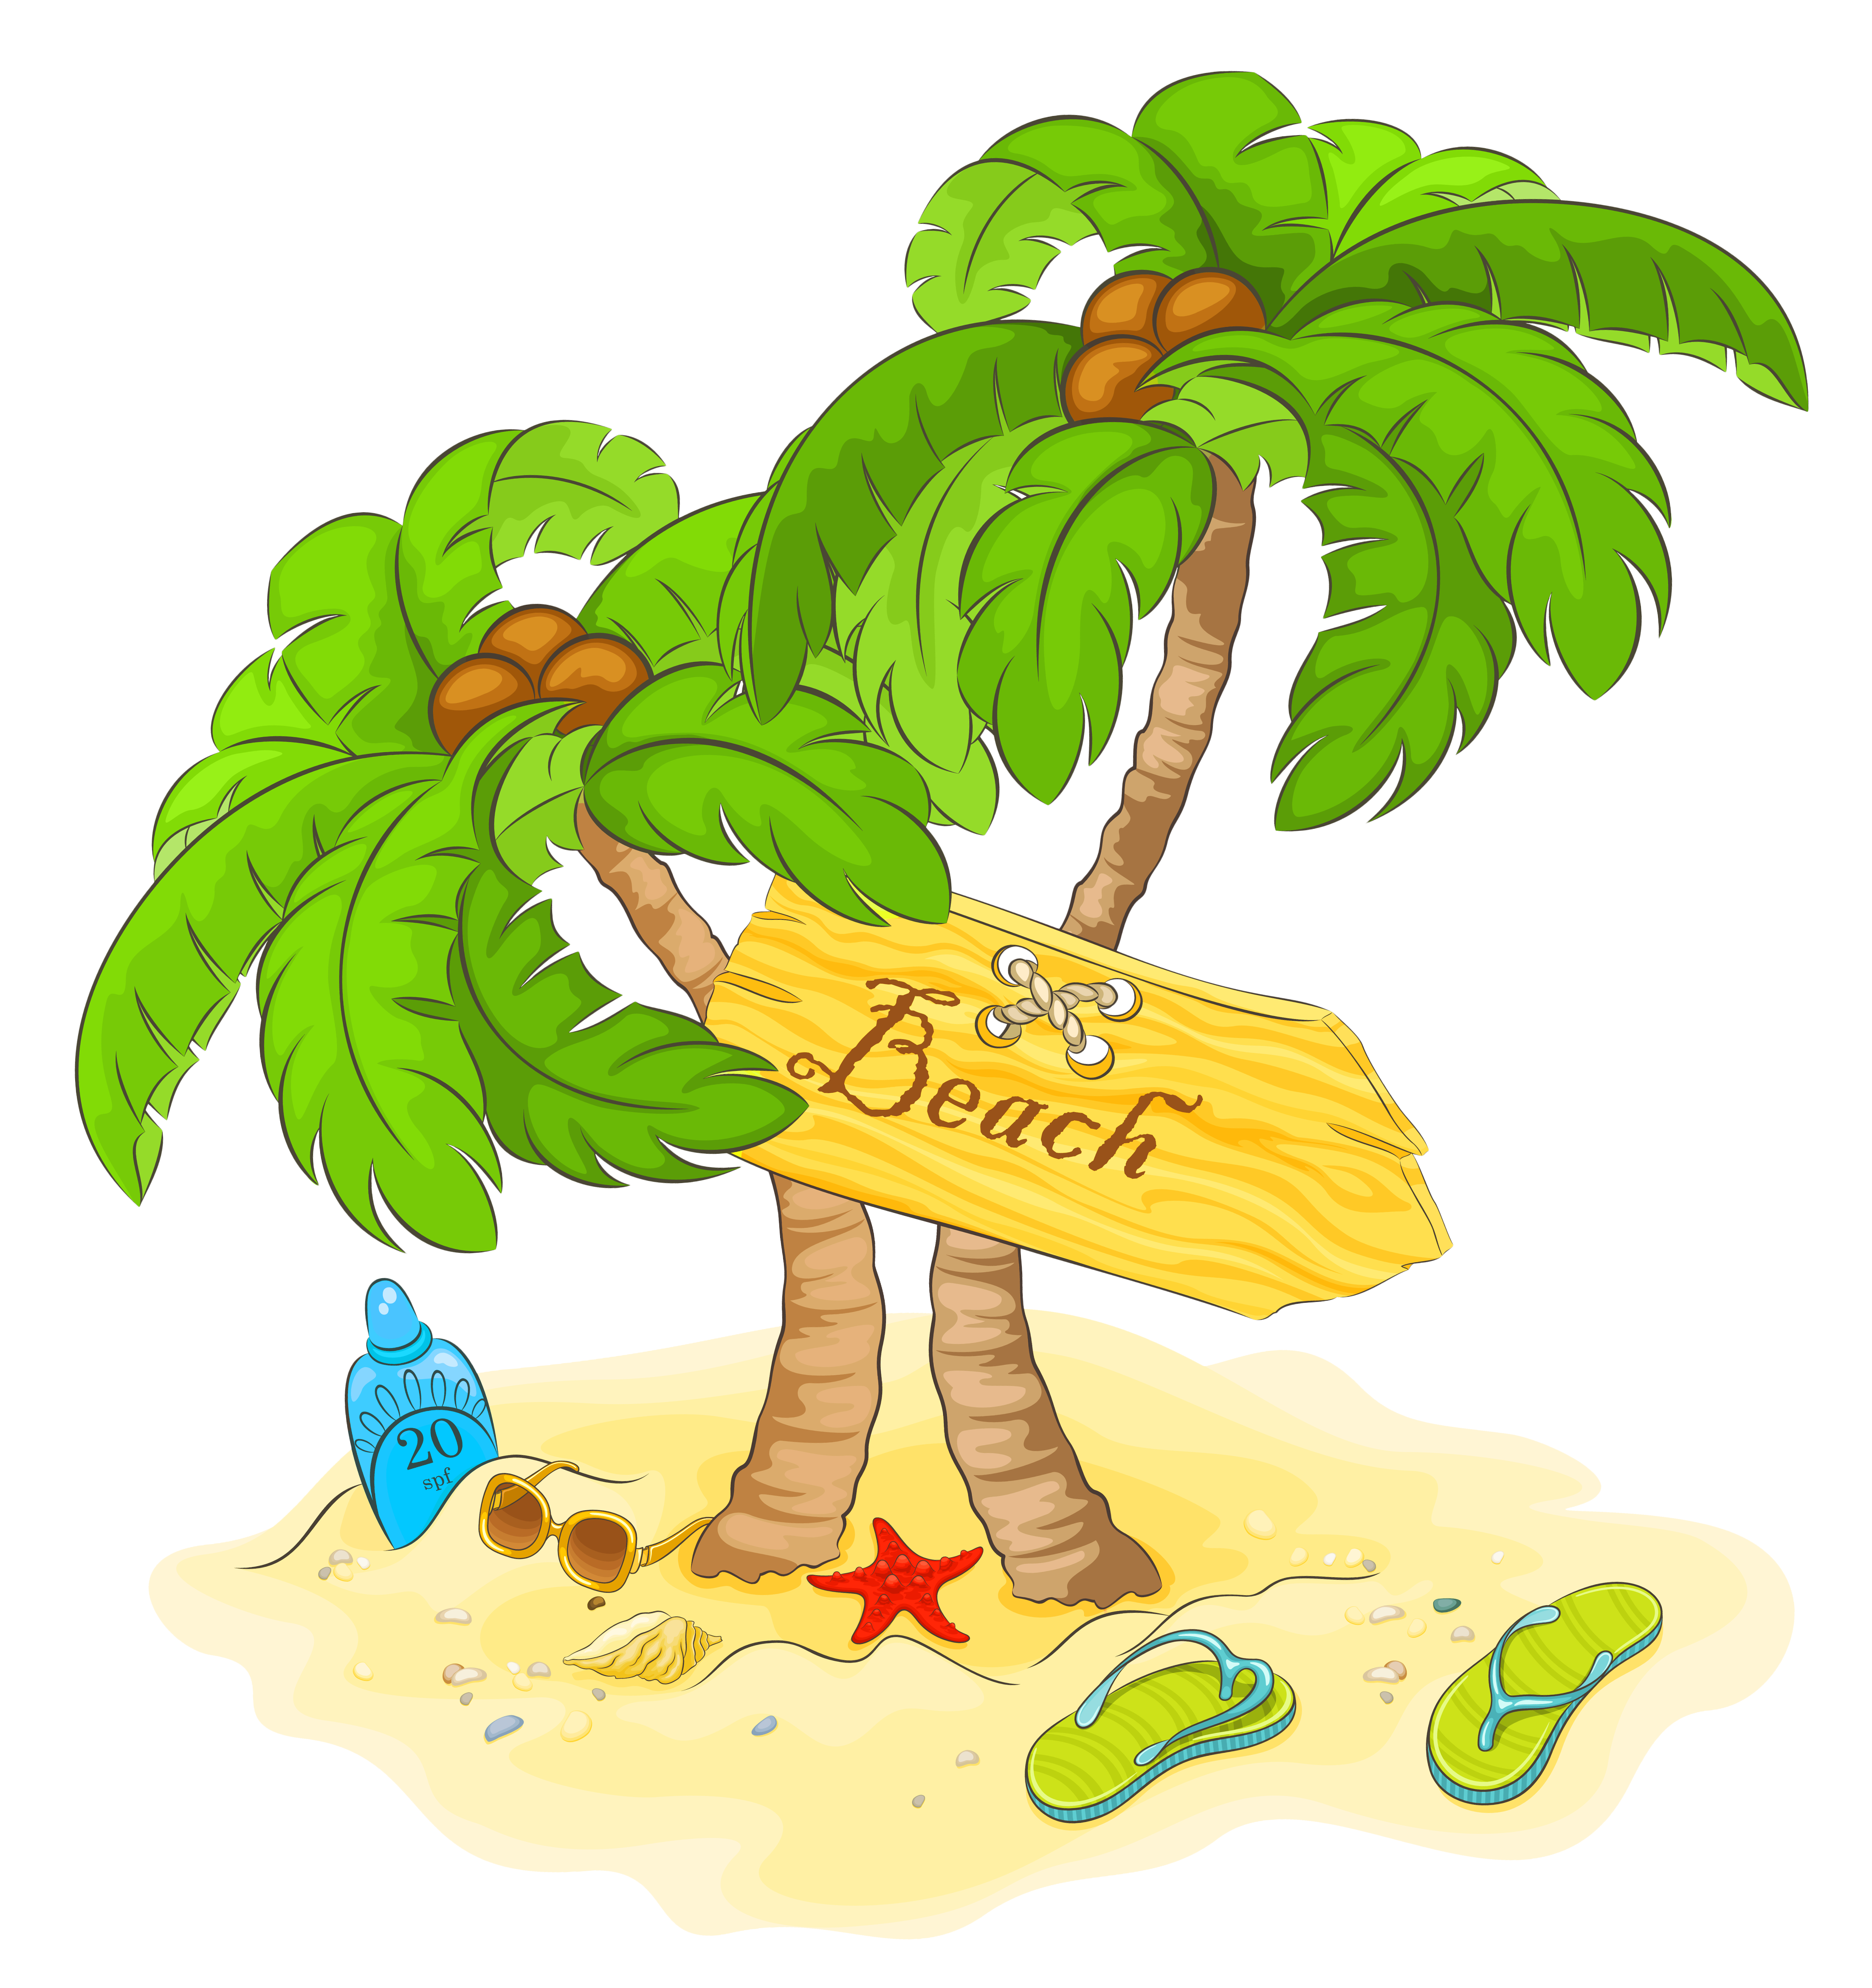 Beach house clipart png royalty free library Vacation Clipart | jokingart.com png royalty free library